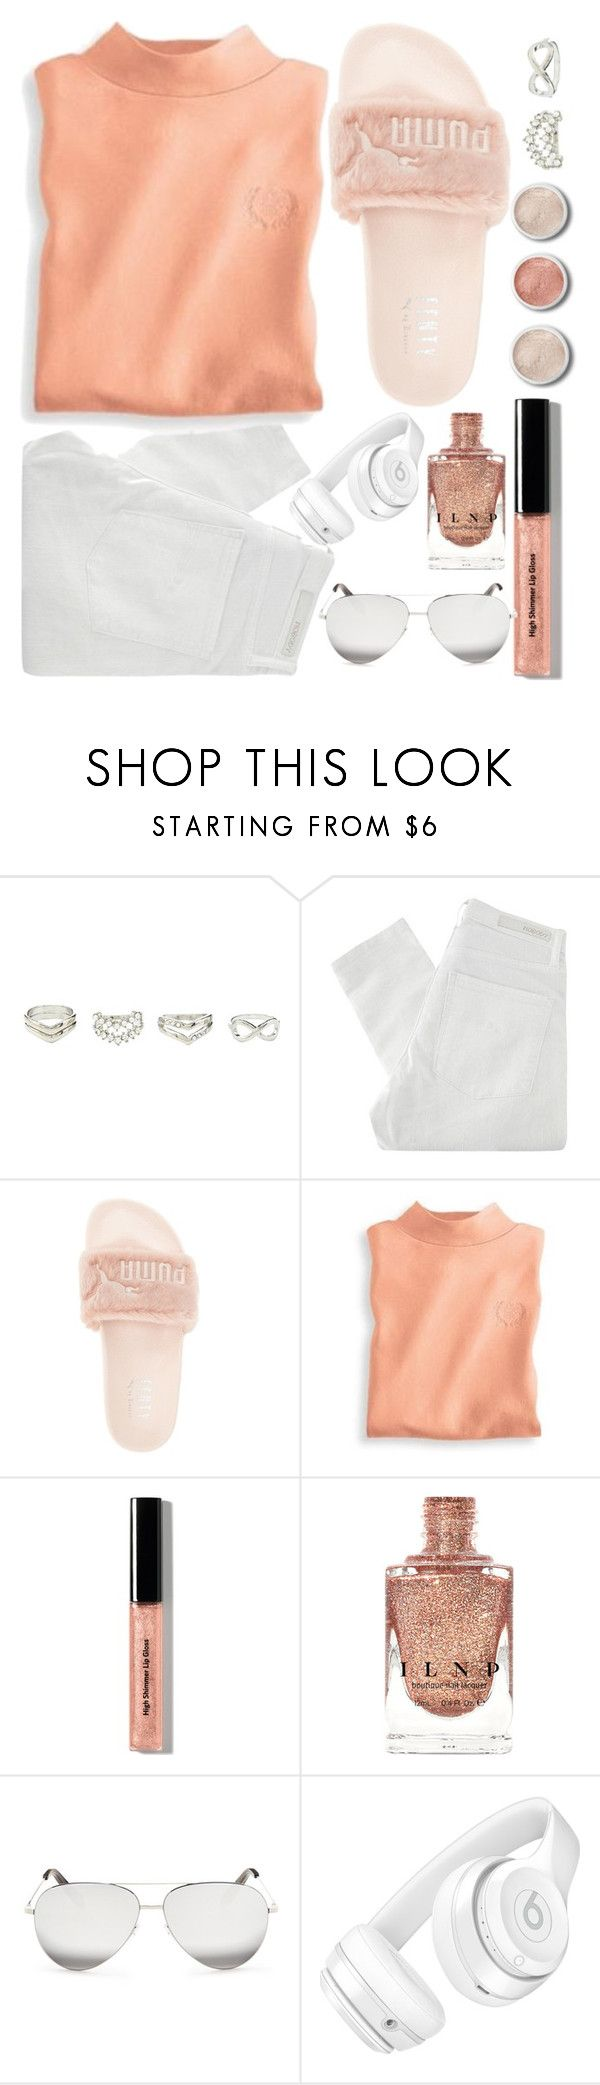 """#26"" by idonthavebrains ❤ liked on Polyvore featuring Charlotte Russe, Terre Mère, Nobody Denim, Puma, Blair, Bobbi Brown Cosmetics, Victoria Beckham and Beats by Dr. Dre"